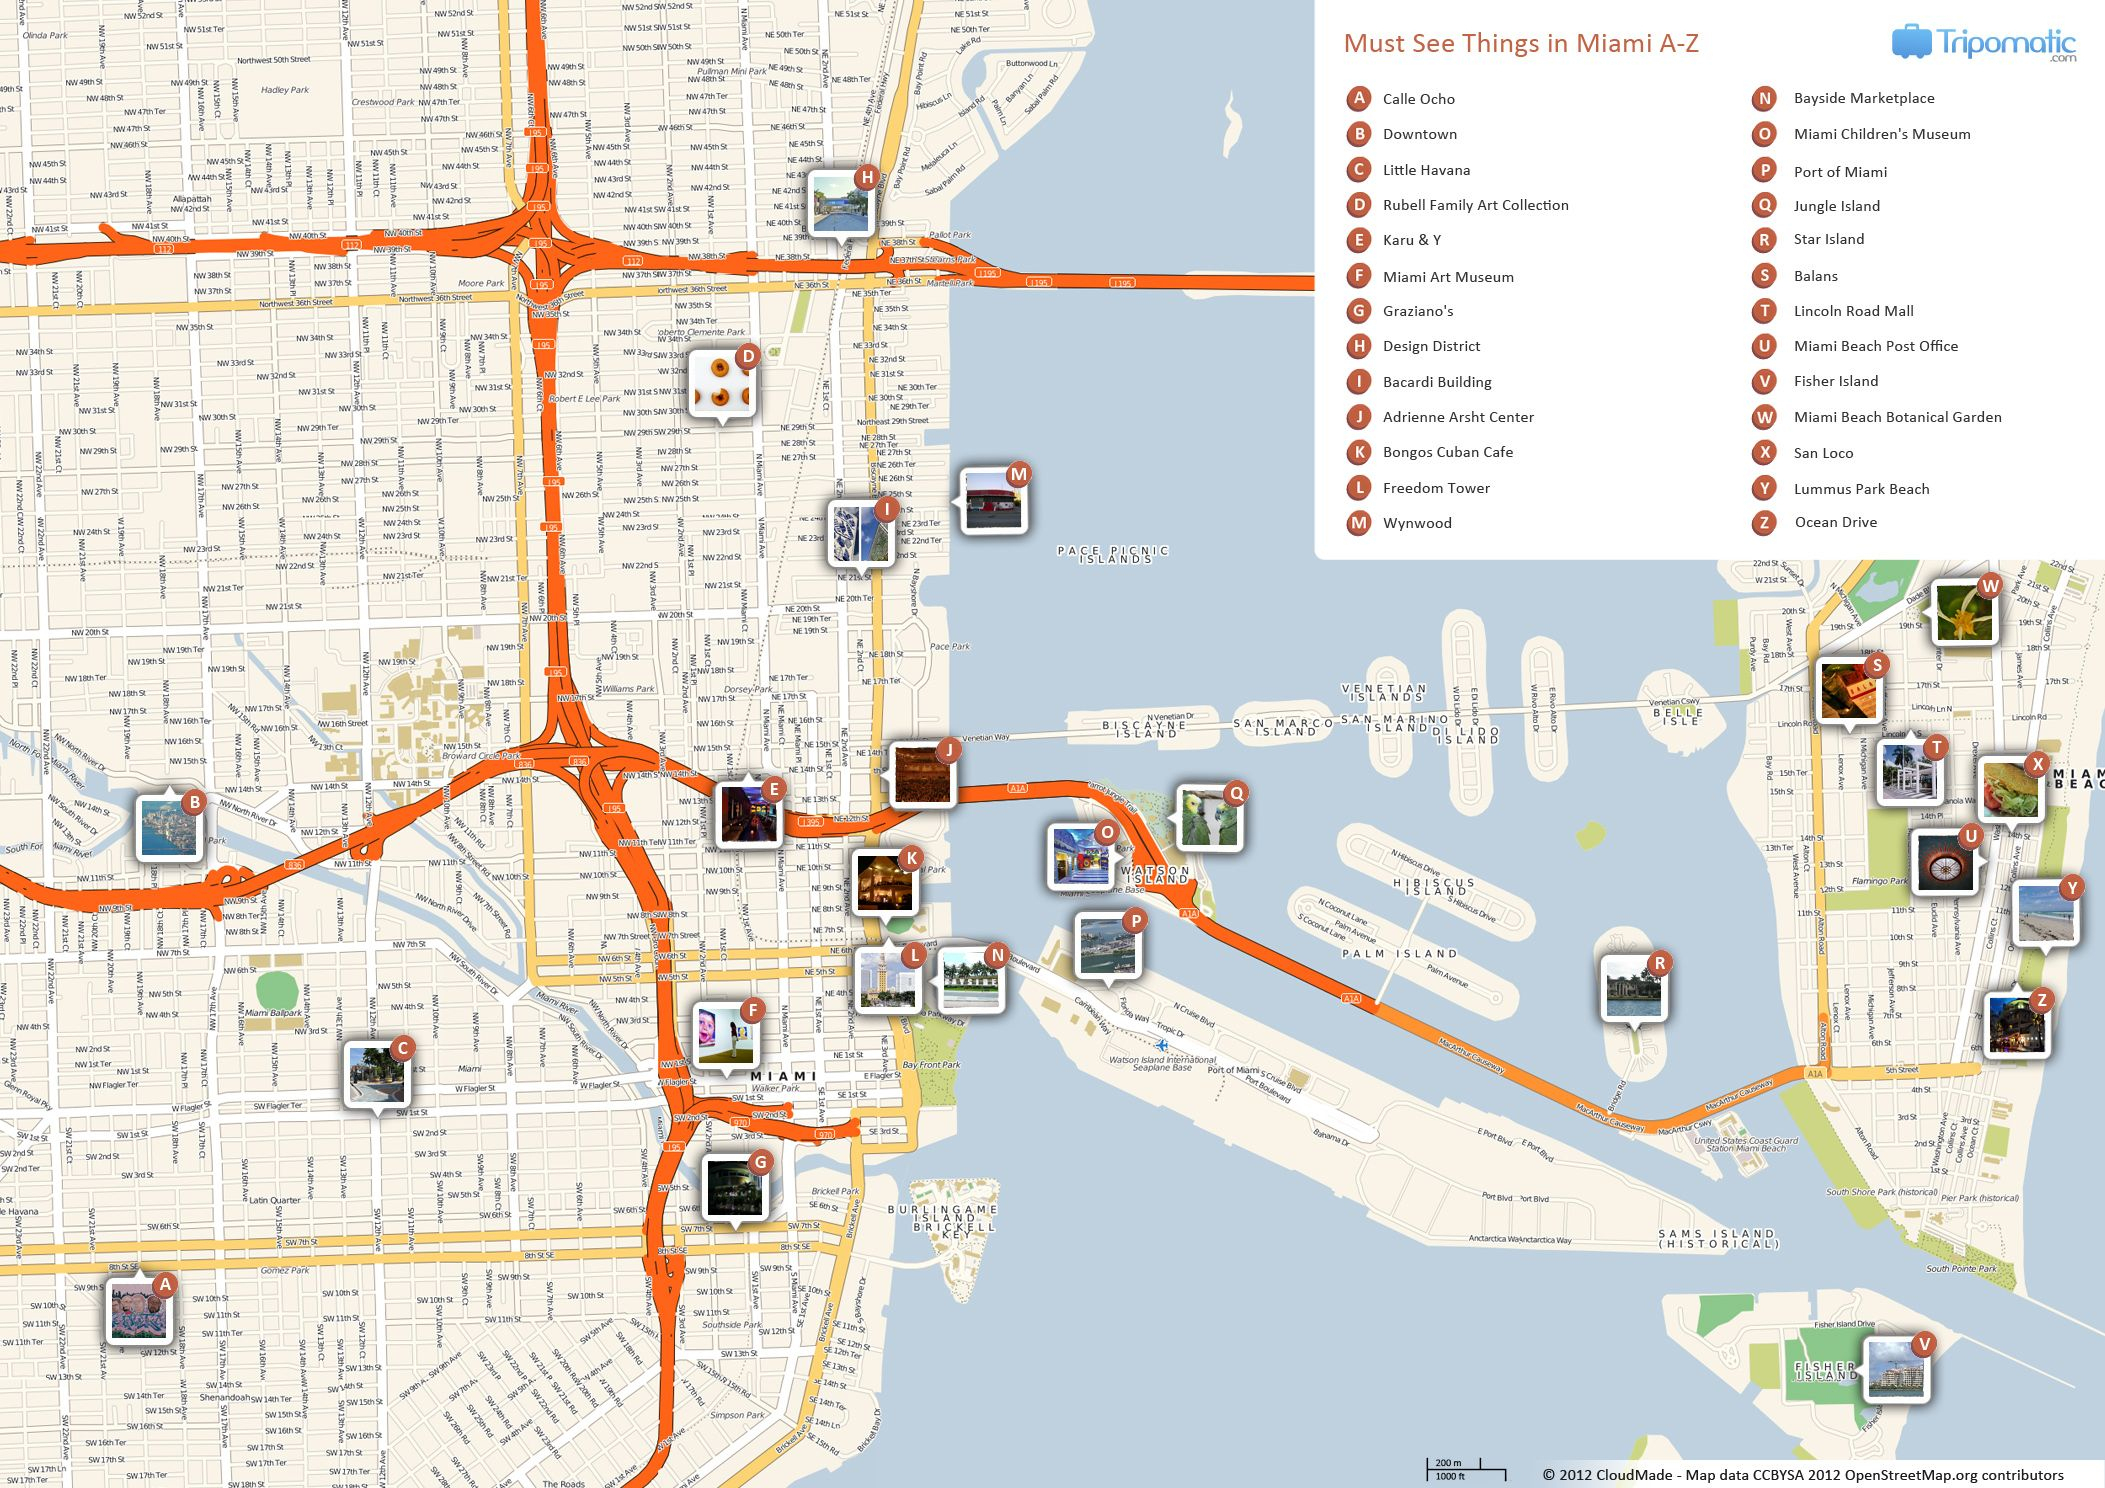 Miami Printable Tourist Map | Free Tourist Maps ✈ | Pinterest - Florida Tourist Map